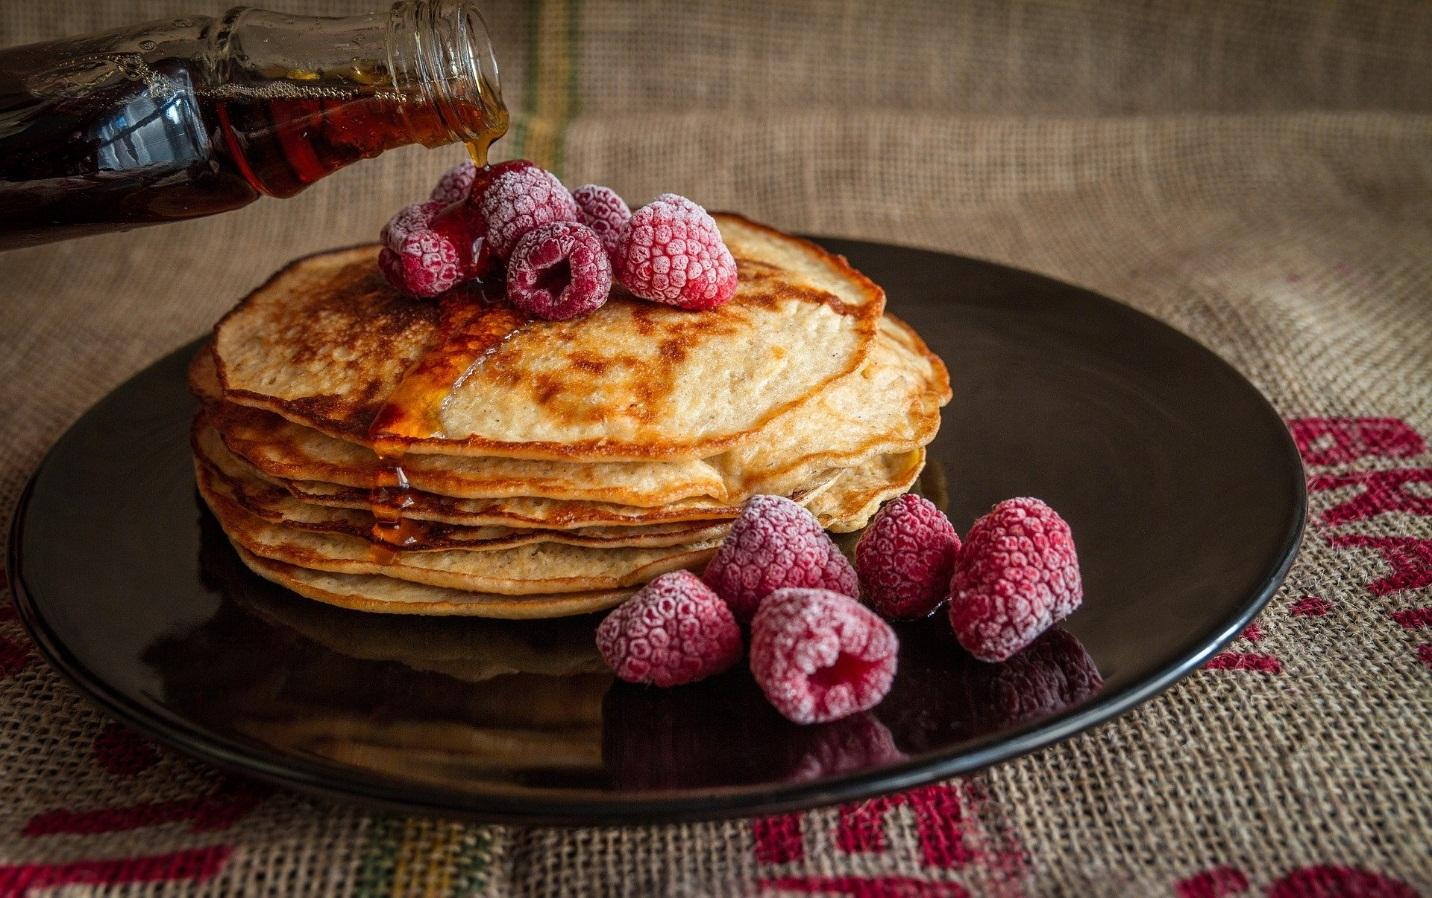 https://pixabay.com/photos/pancakes-maple-syrup-sweet-food-2291908/